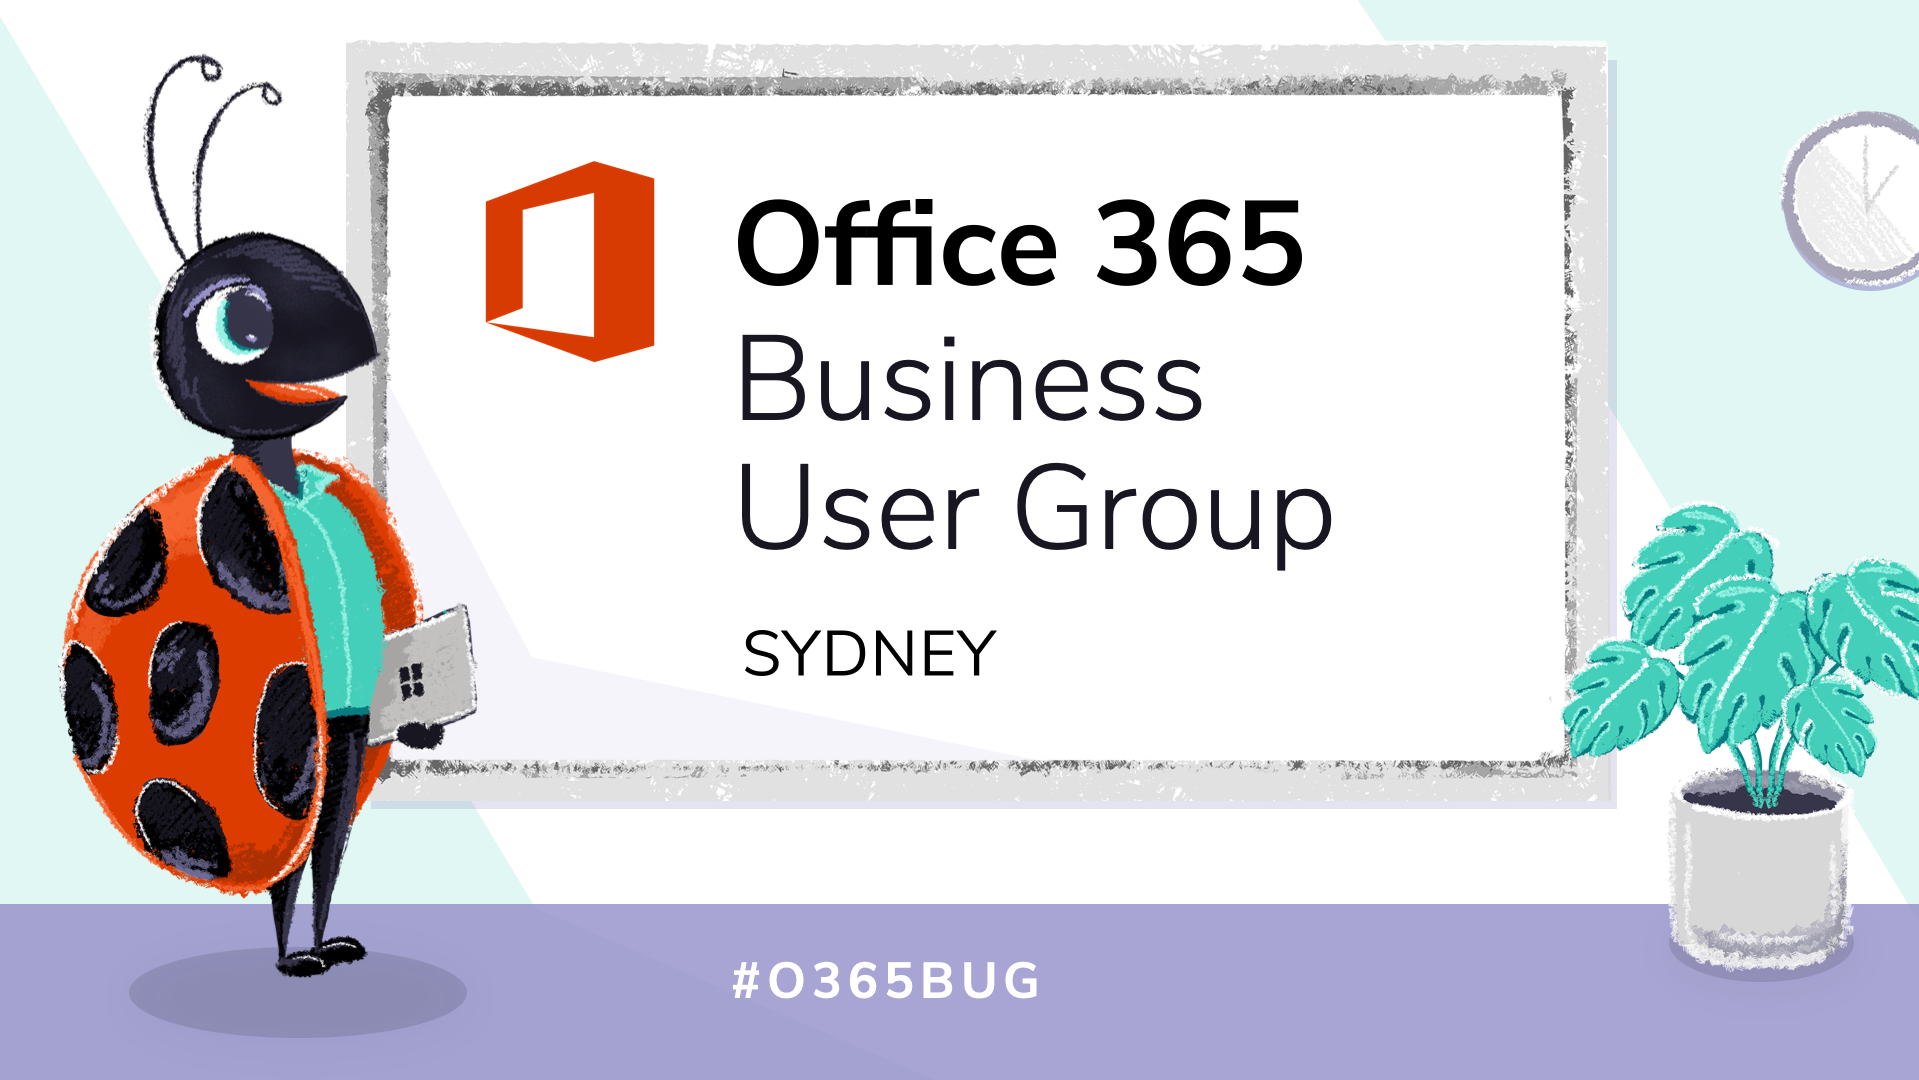 Office 365 Business Users - Sydney